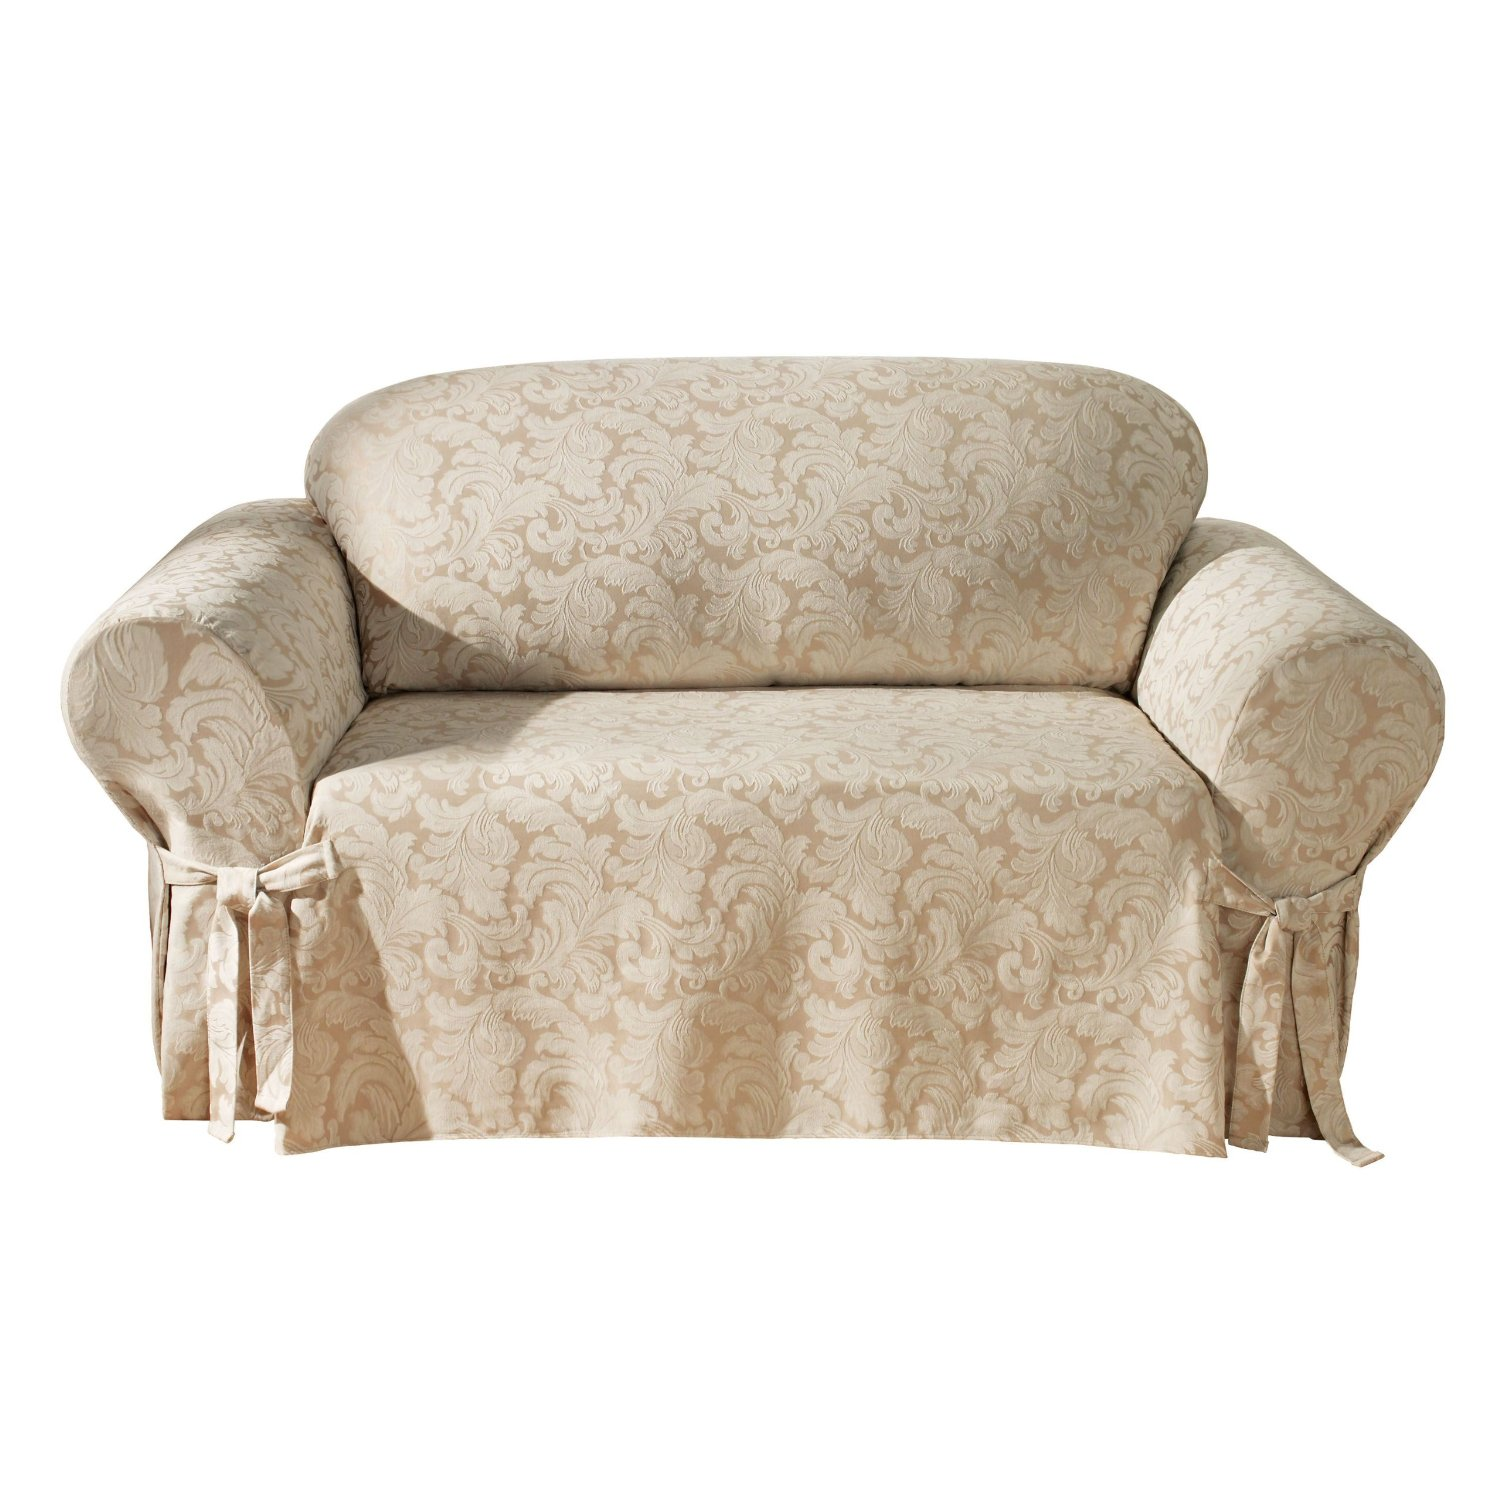 Sectional Sofa Covers | Walmart Couch Covers | Oversized Chair Slipcover